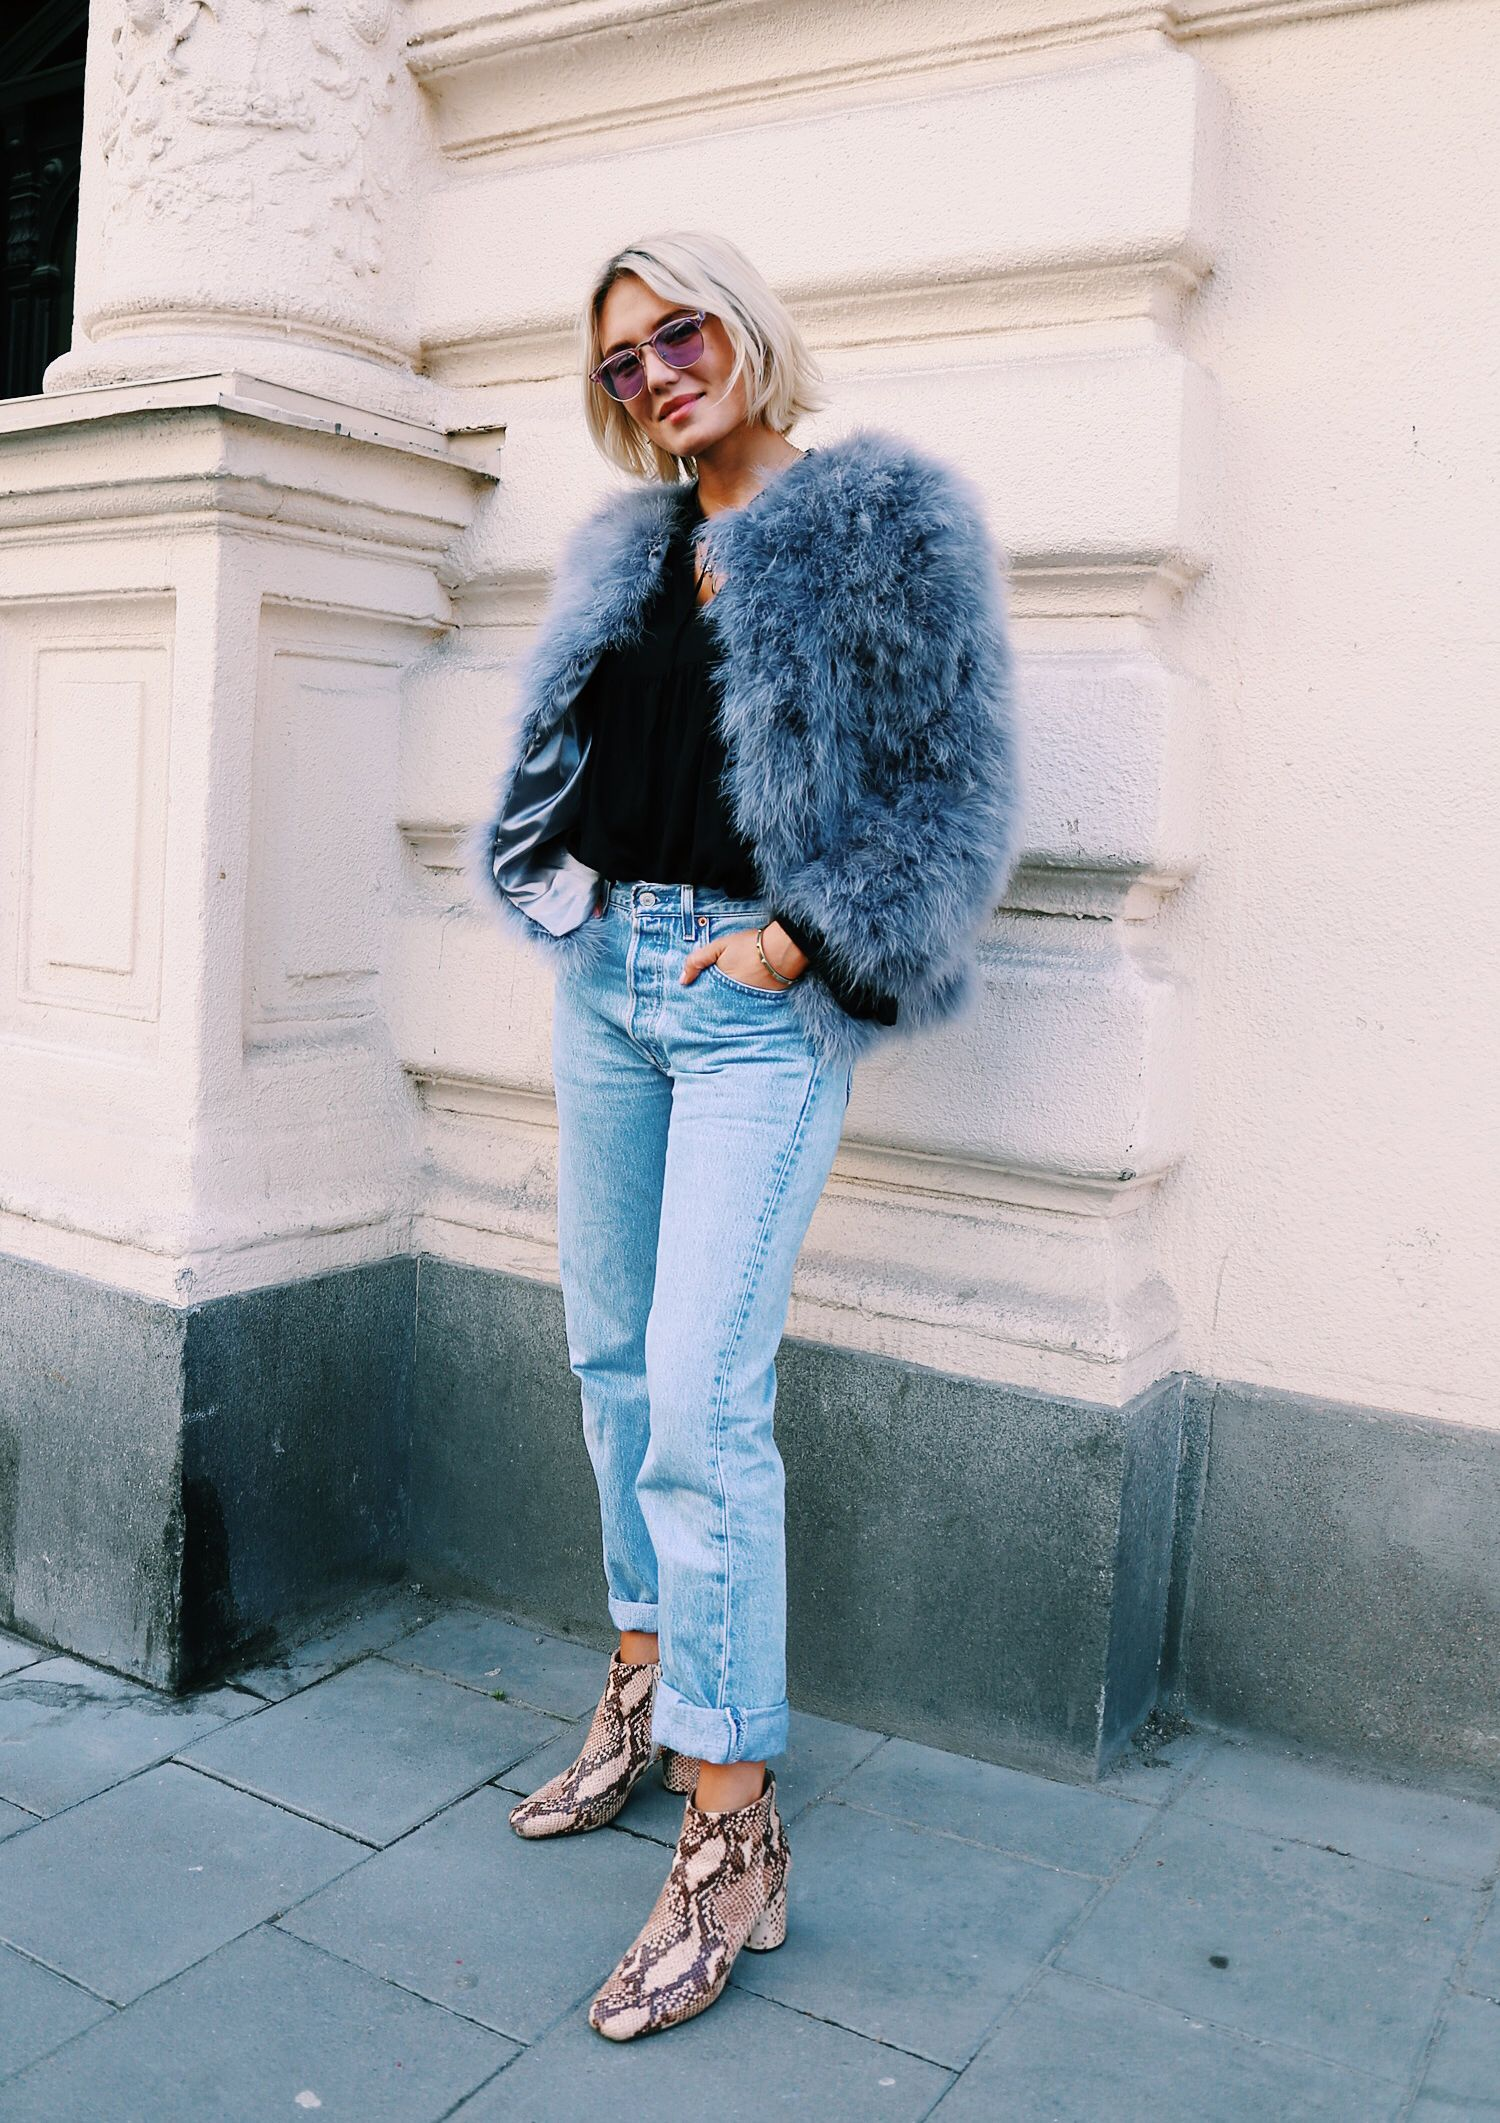 Chubby Fur With Jeans And Snakeskin Booties Furry Finds